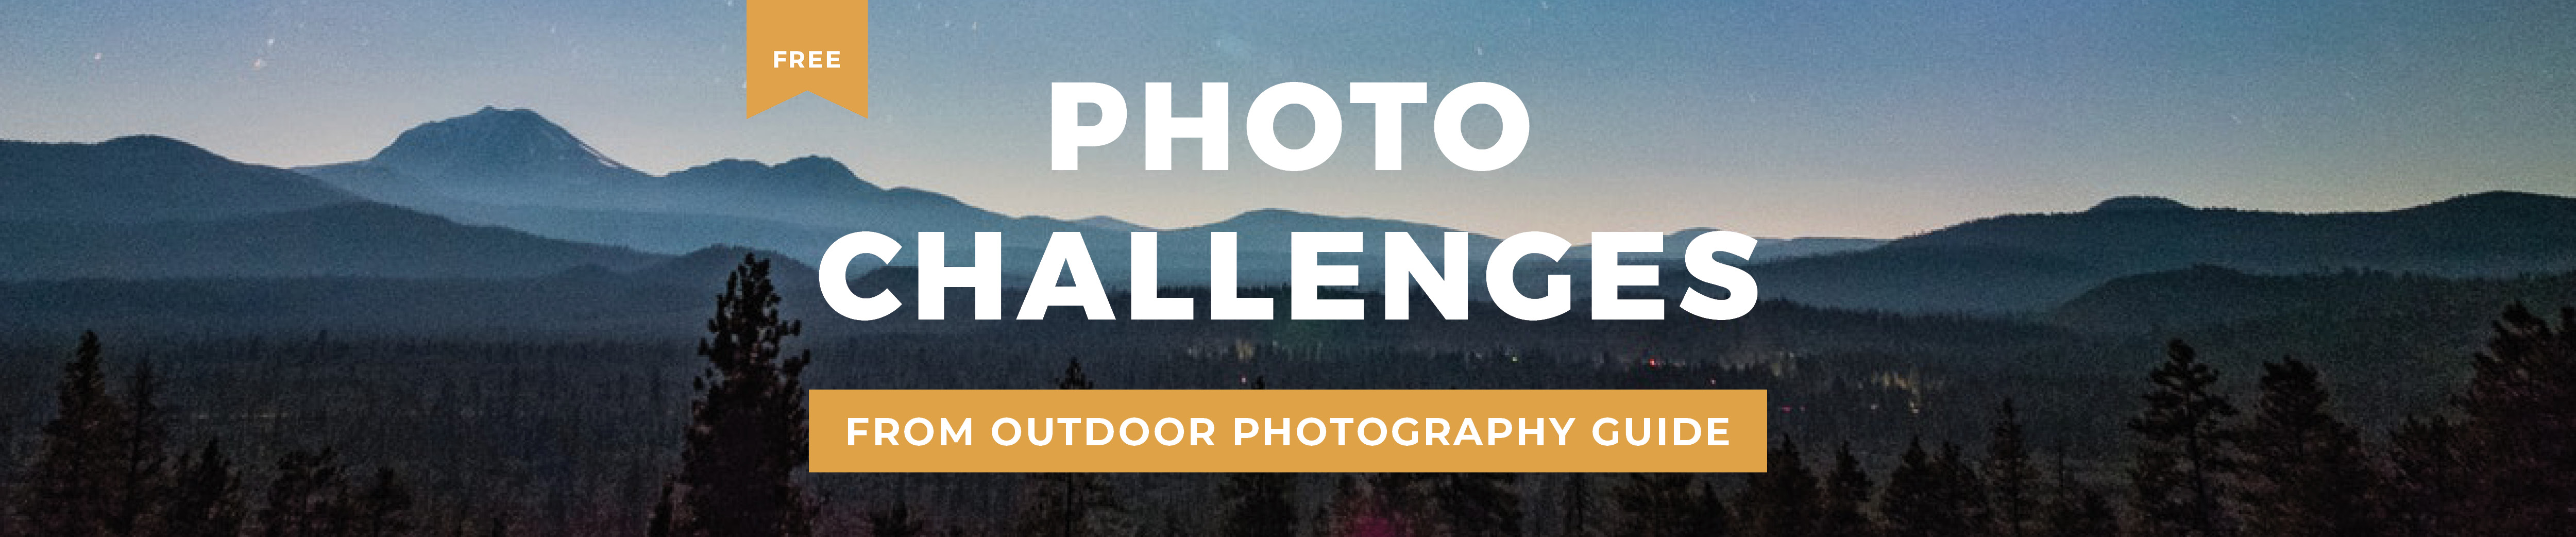 Free Photo Challenges from Outdoor Photography Guide